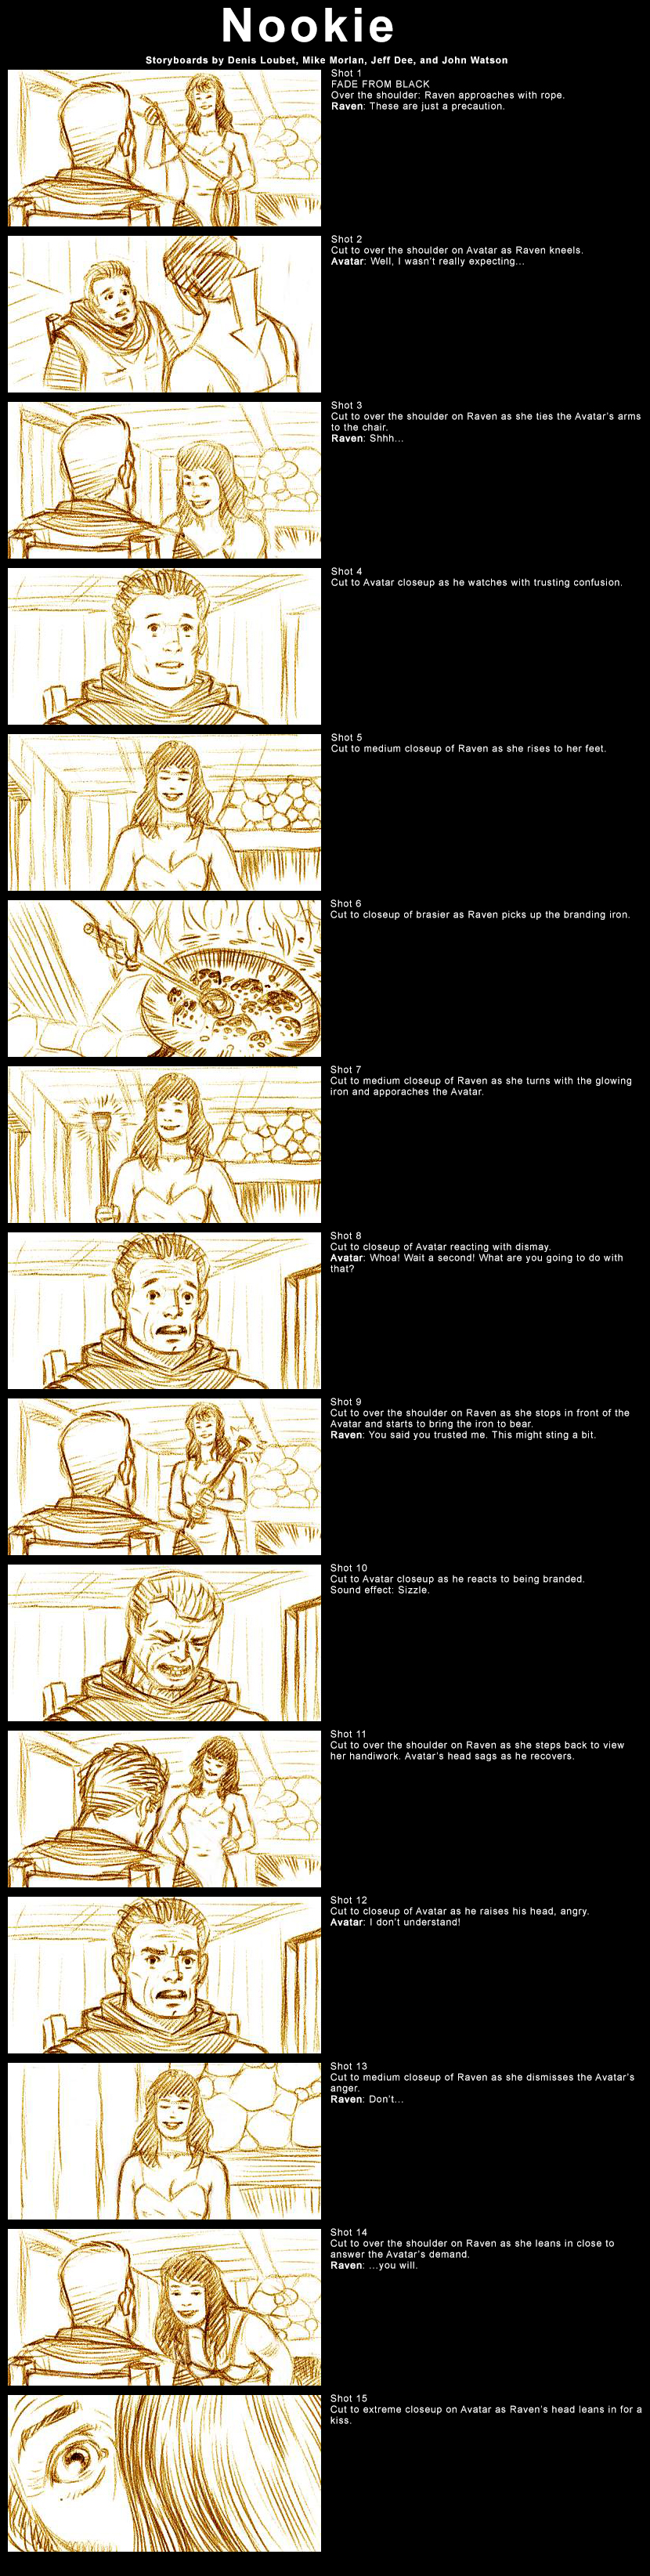 "Ultima 9 ""Nookie"" Cutscene Storyboards – The Origin Gallery"